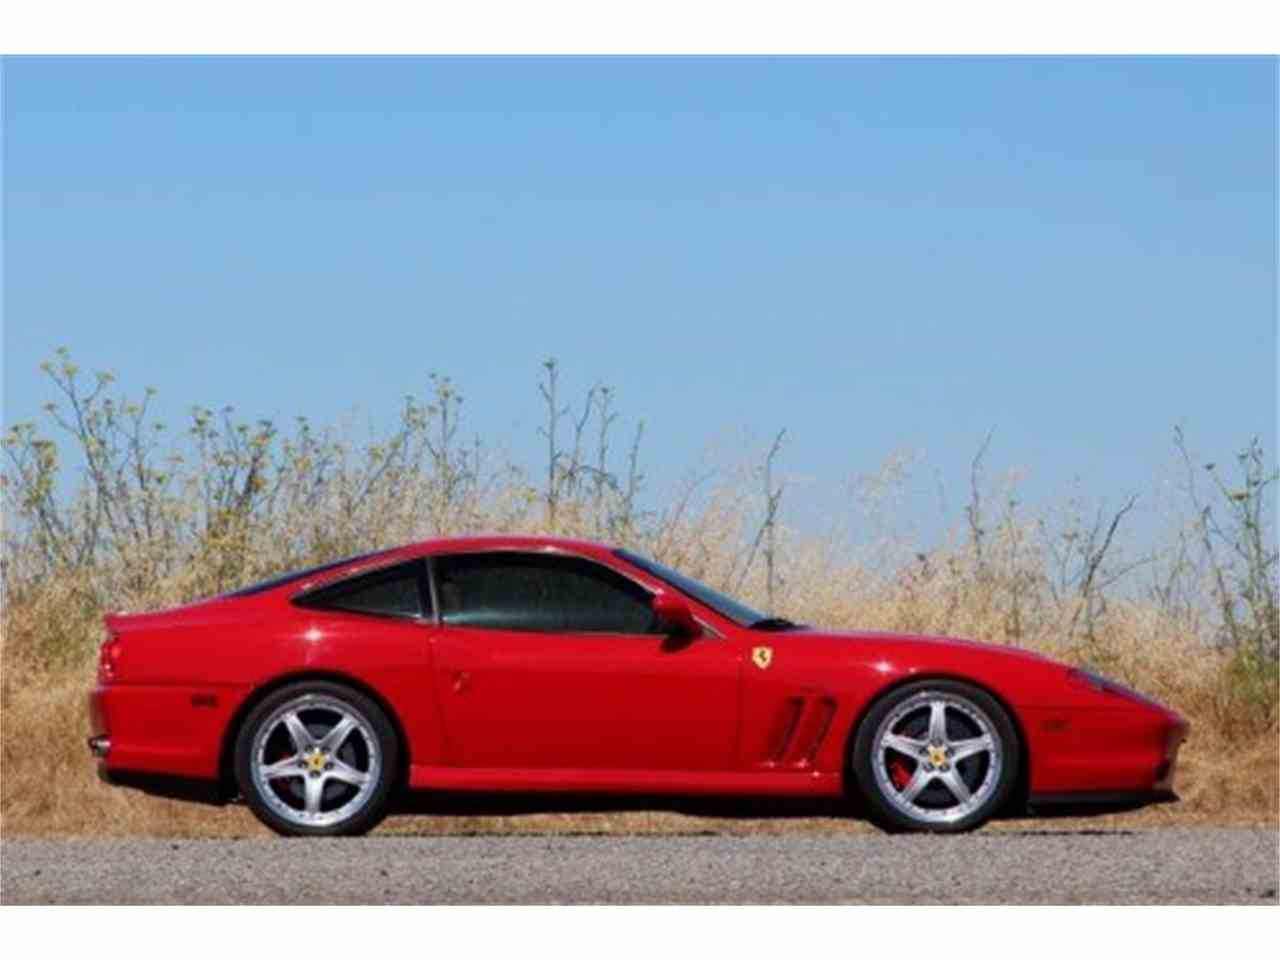 Large Picture of '03 Ferrari 575 Maranello located in New York - $267,500.00 Offered by Gullwing Motor Cars - KH6P